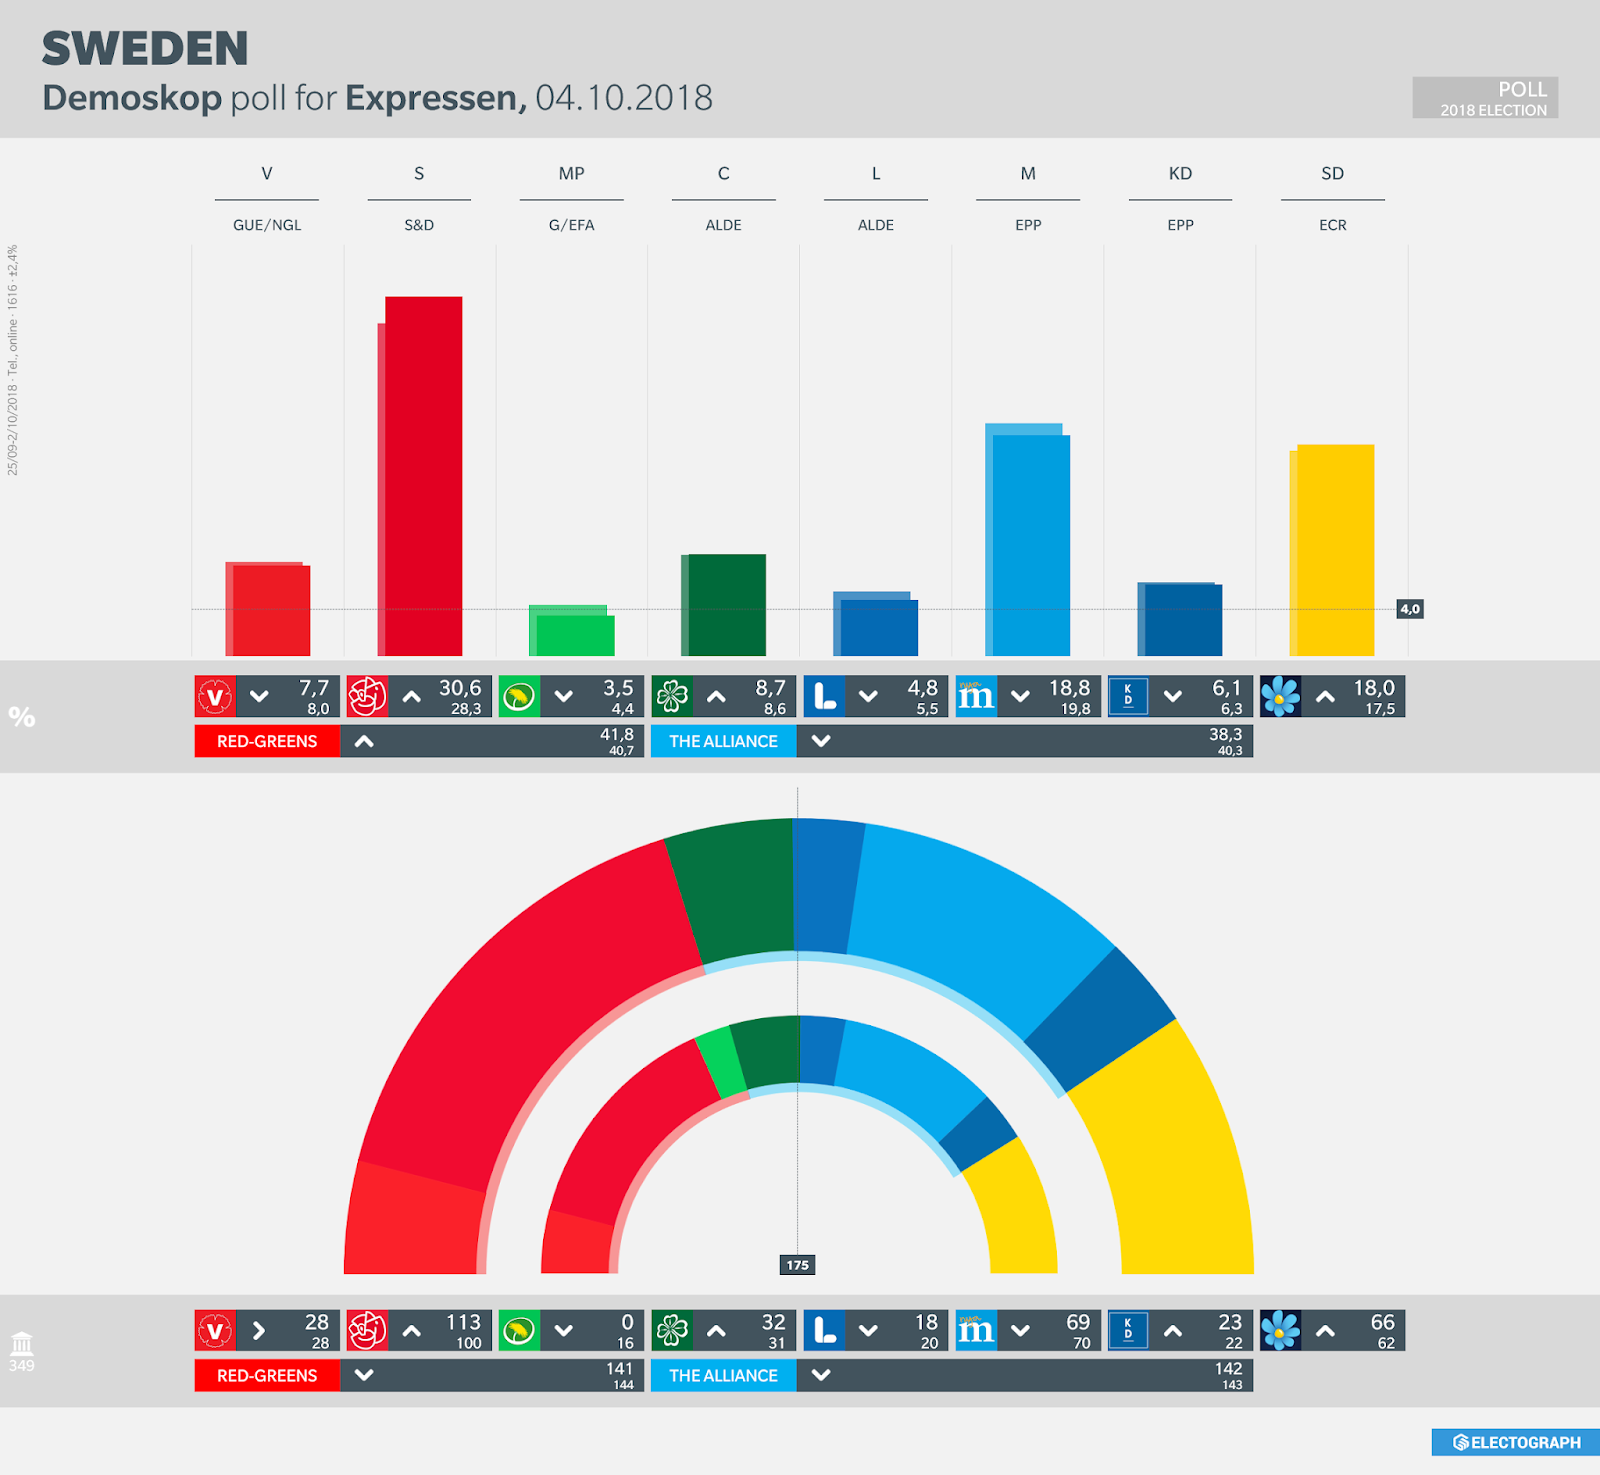 SWEDEN: Demoskop poll chart for Expressen, October 2018